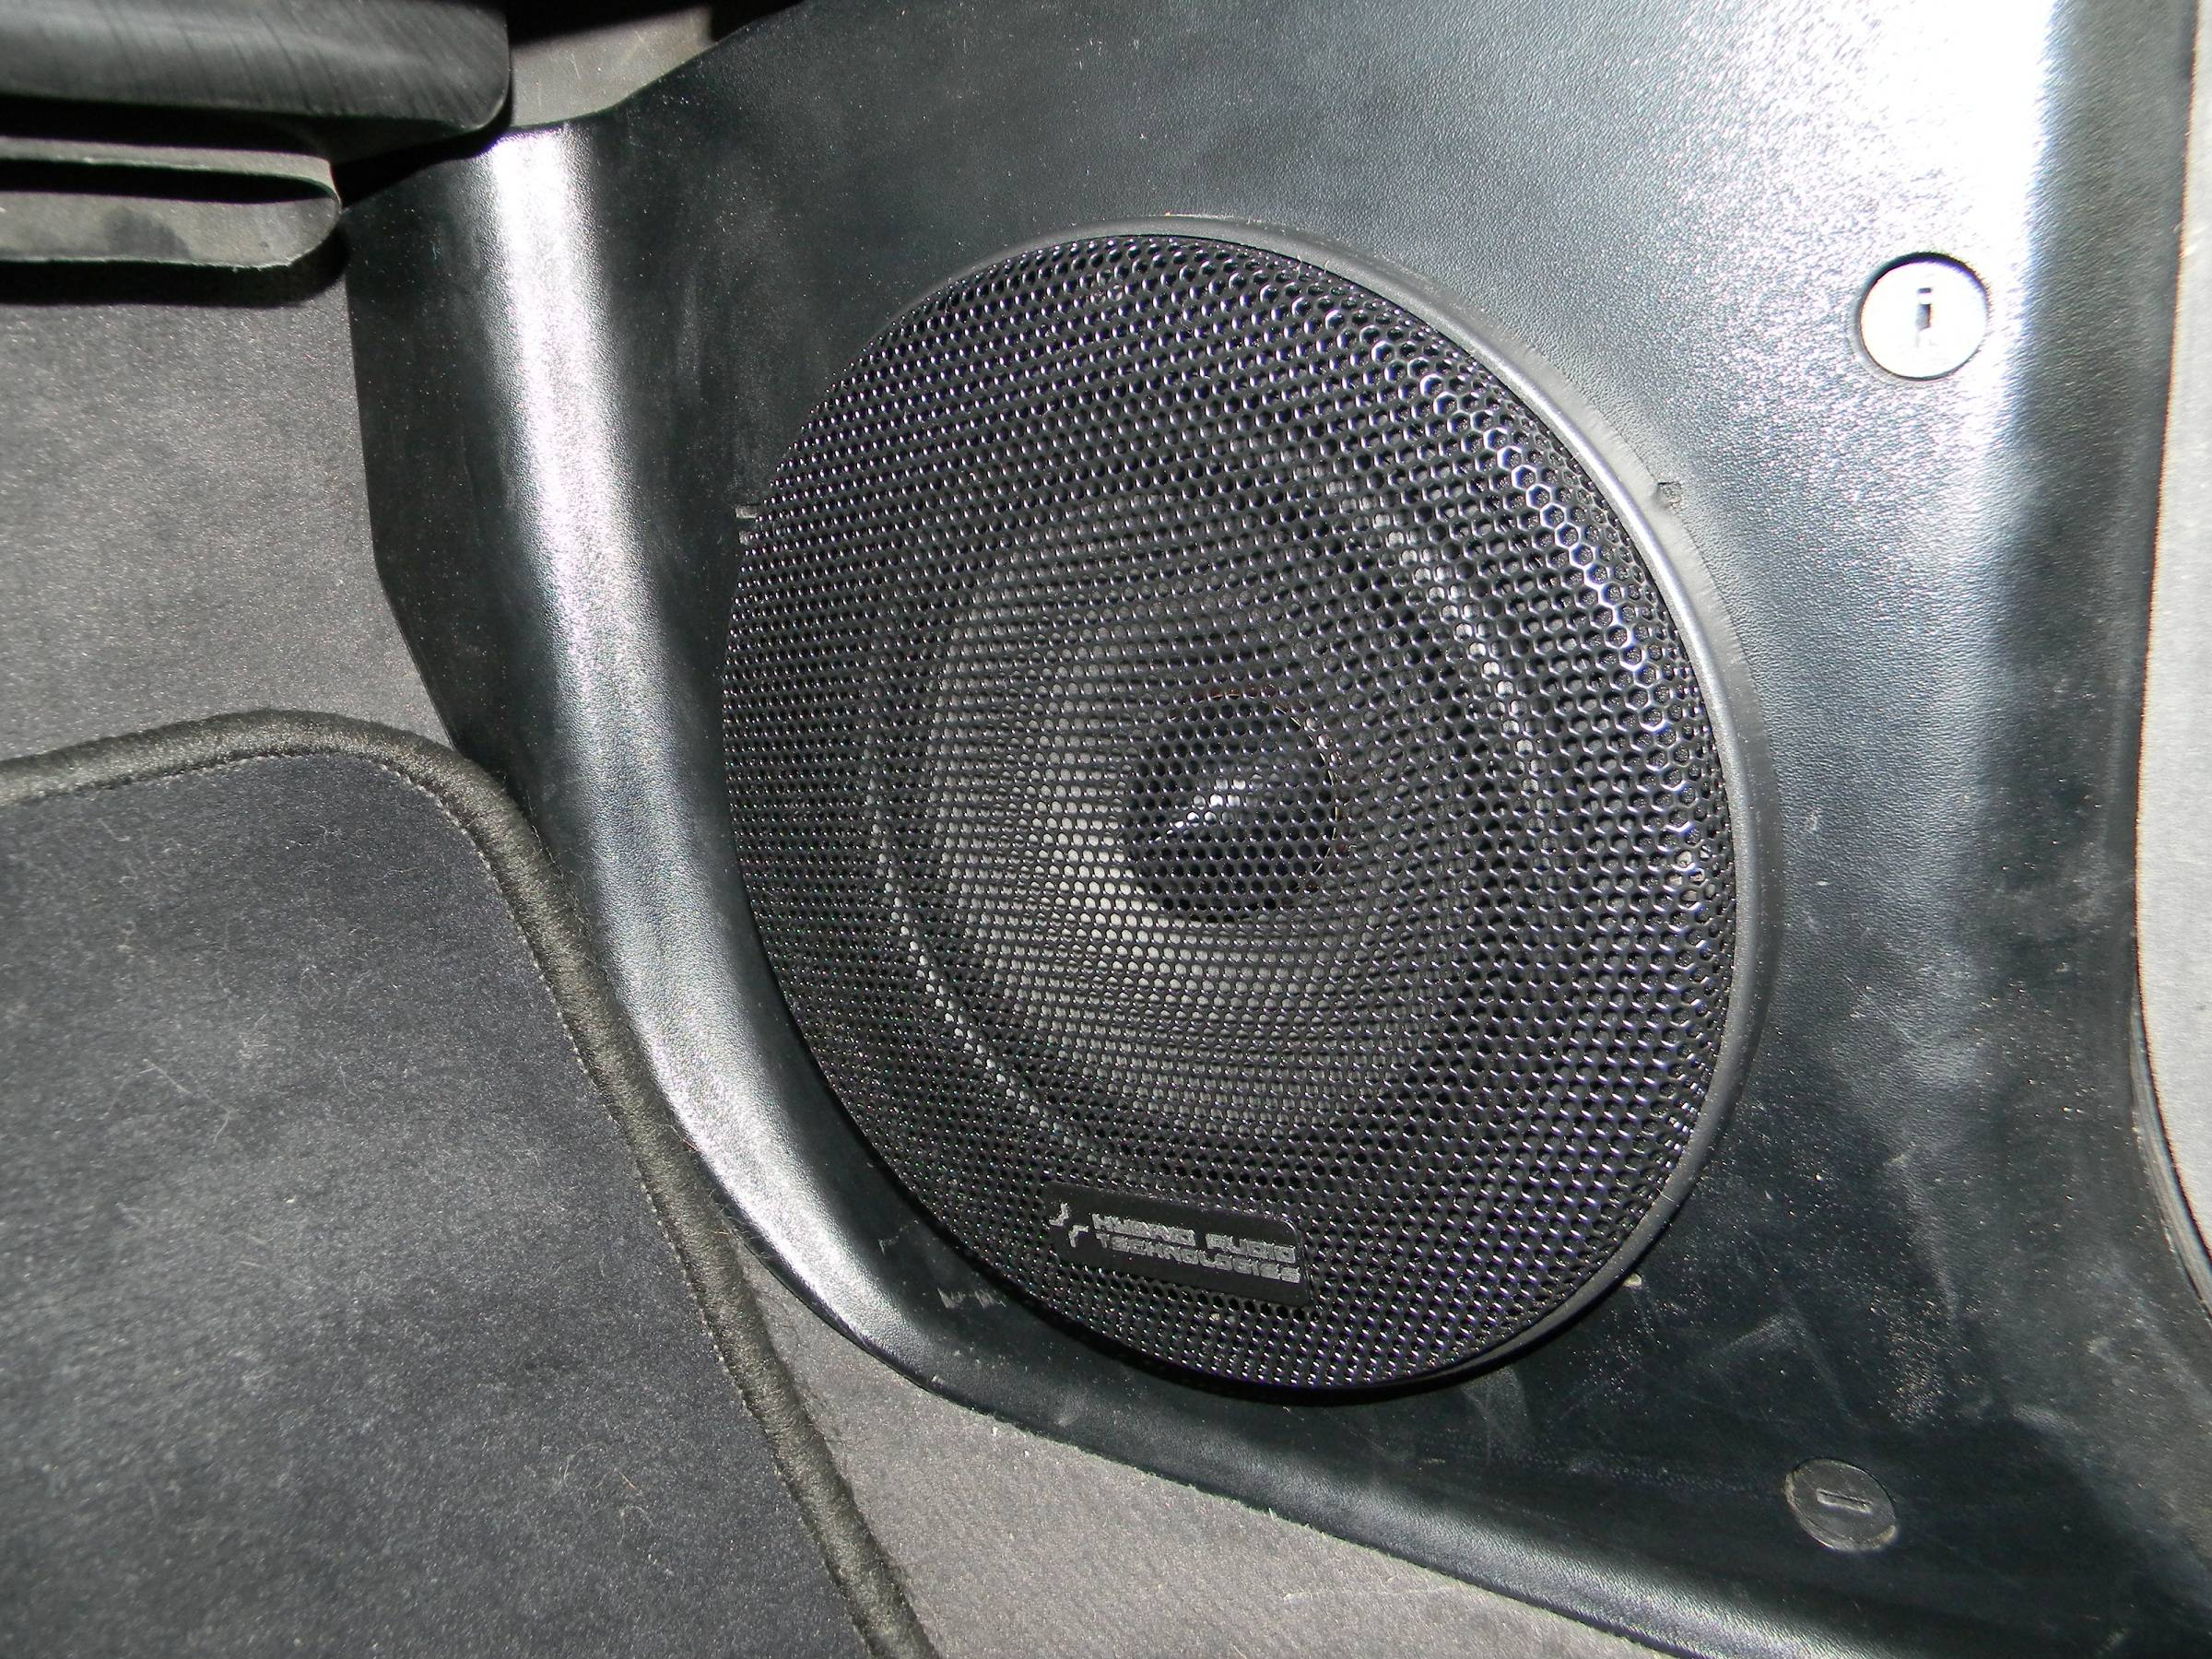 Bmw E34 Stereo Install Car Audio From Australia Diymobileaudiocom Forum Click This Bar To View The Full Image Original Is Sized 12